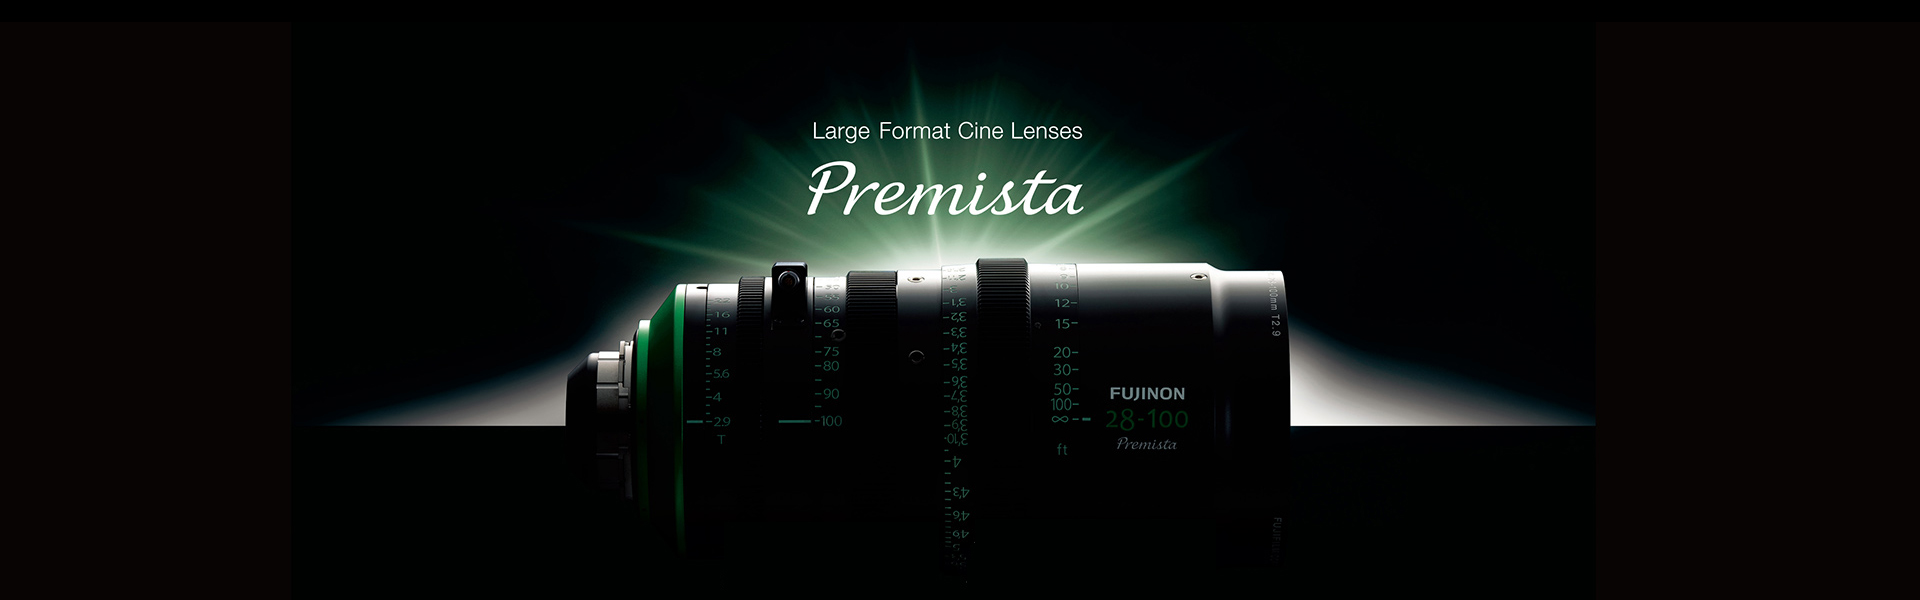 [photo] Fujinon 28-100 Premista Large Format Cine Lens full-width view on its side with green light shining upon it